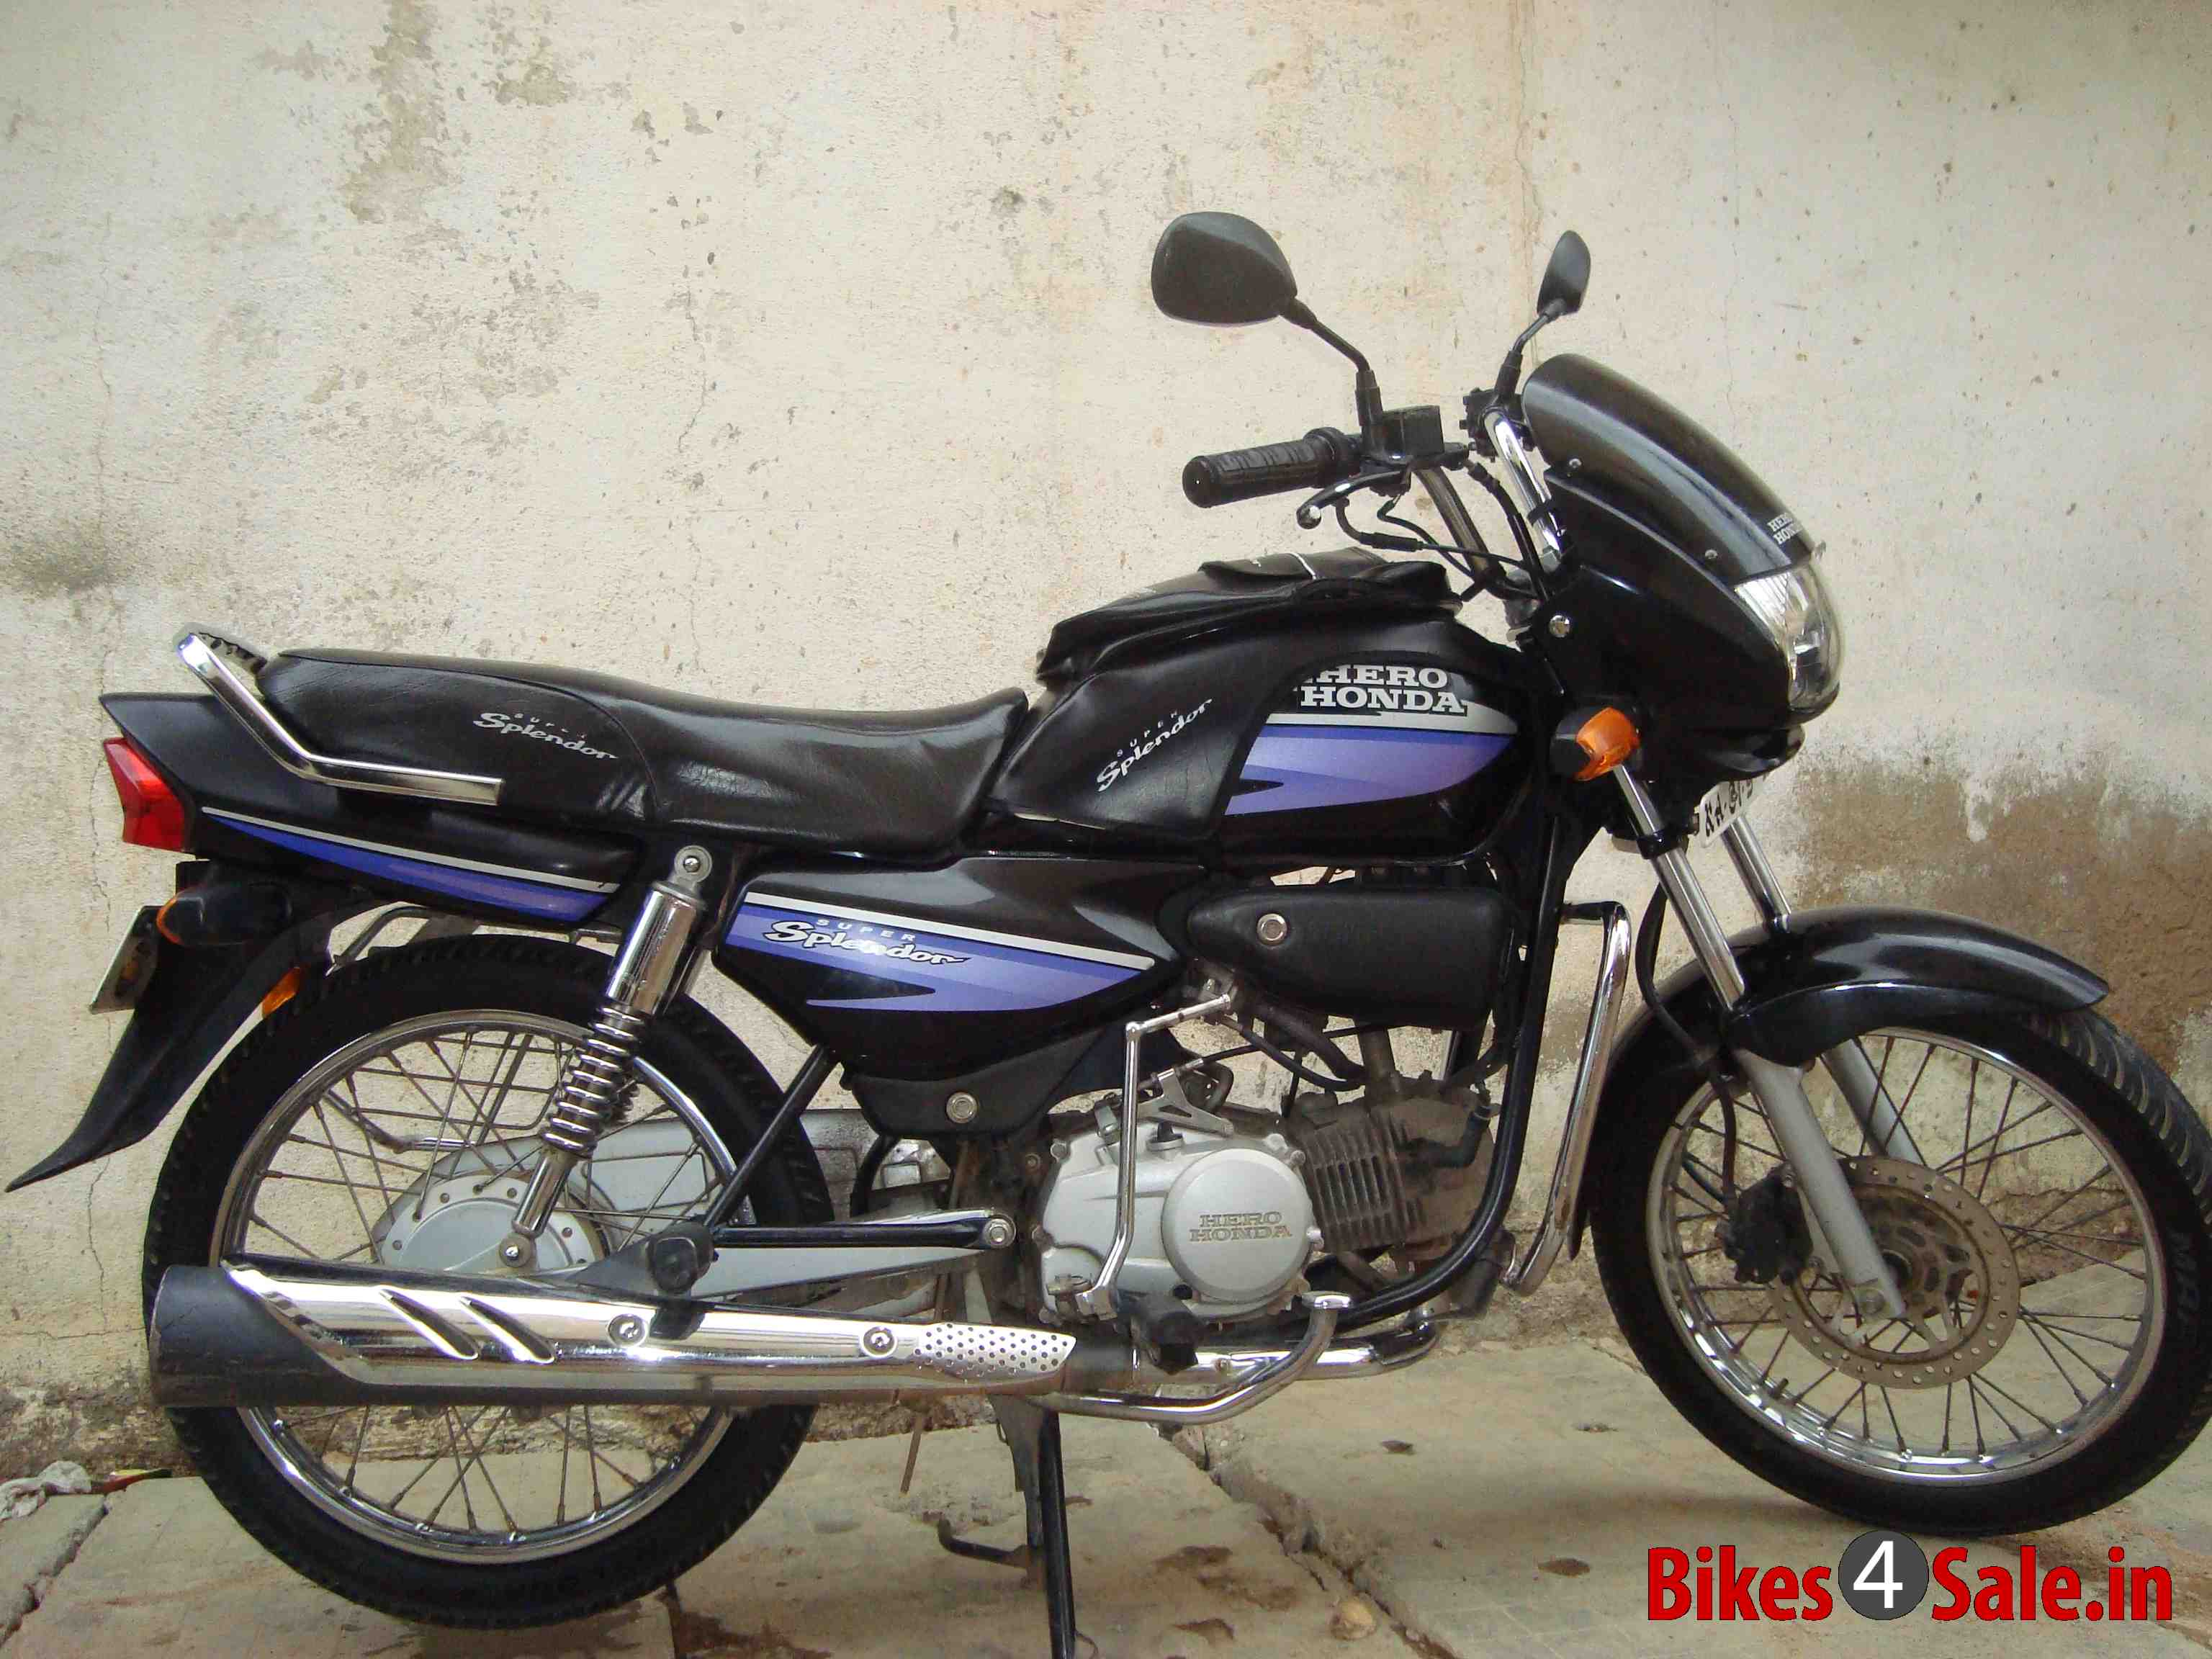 Hero Honda Splendor 2007 images #95882